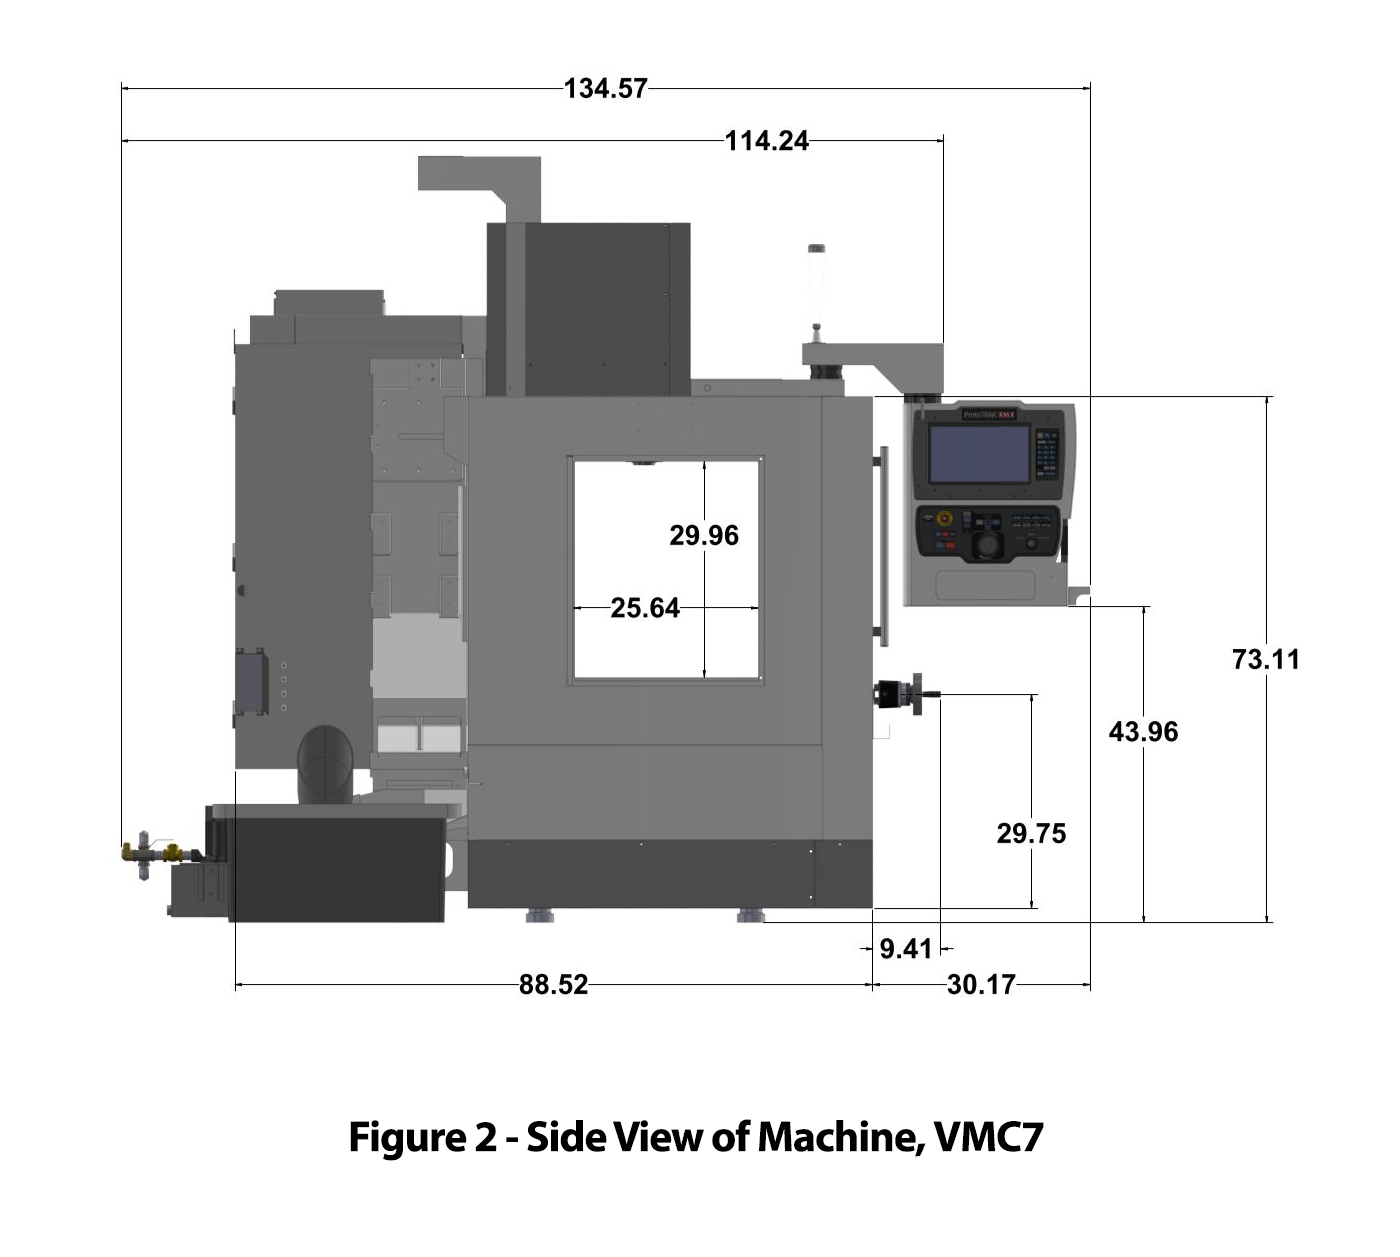 TRAK VMC7 Vertical Machining Center - Figure 2